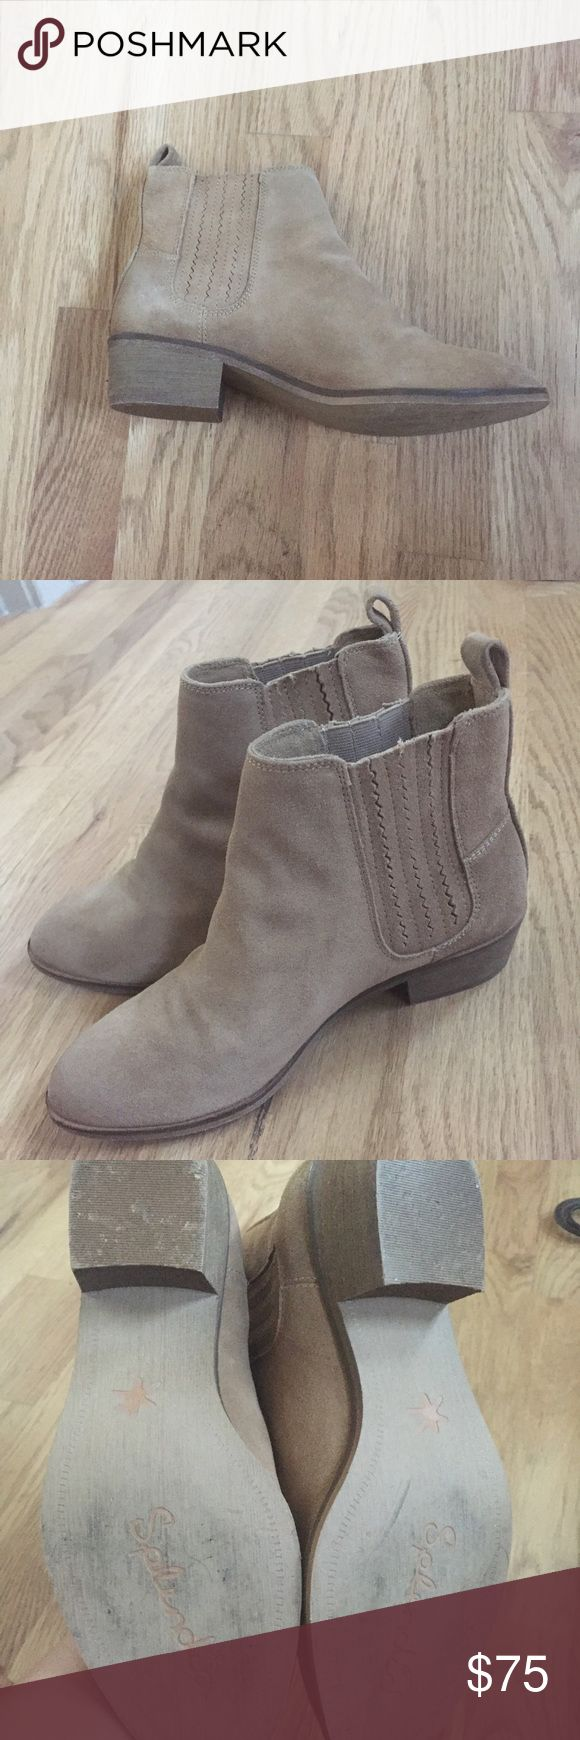 Splendid 6.5 suede ankle boots Like new, only has been worn around the house. No zipper but slip on Splendid Shoes Ankle Boots & Booties